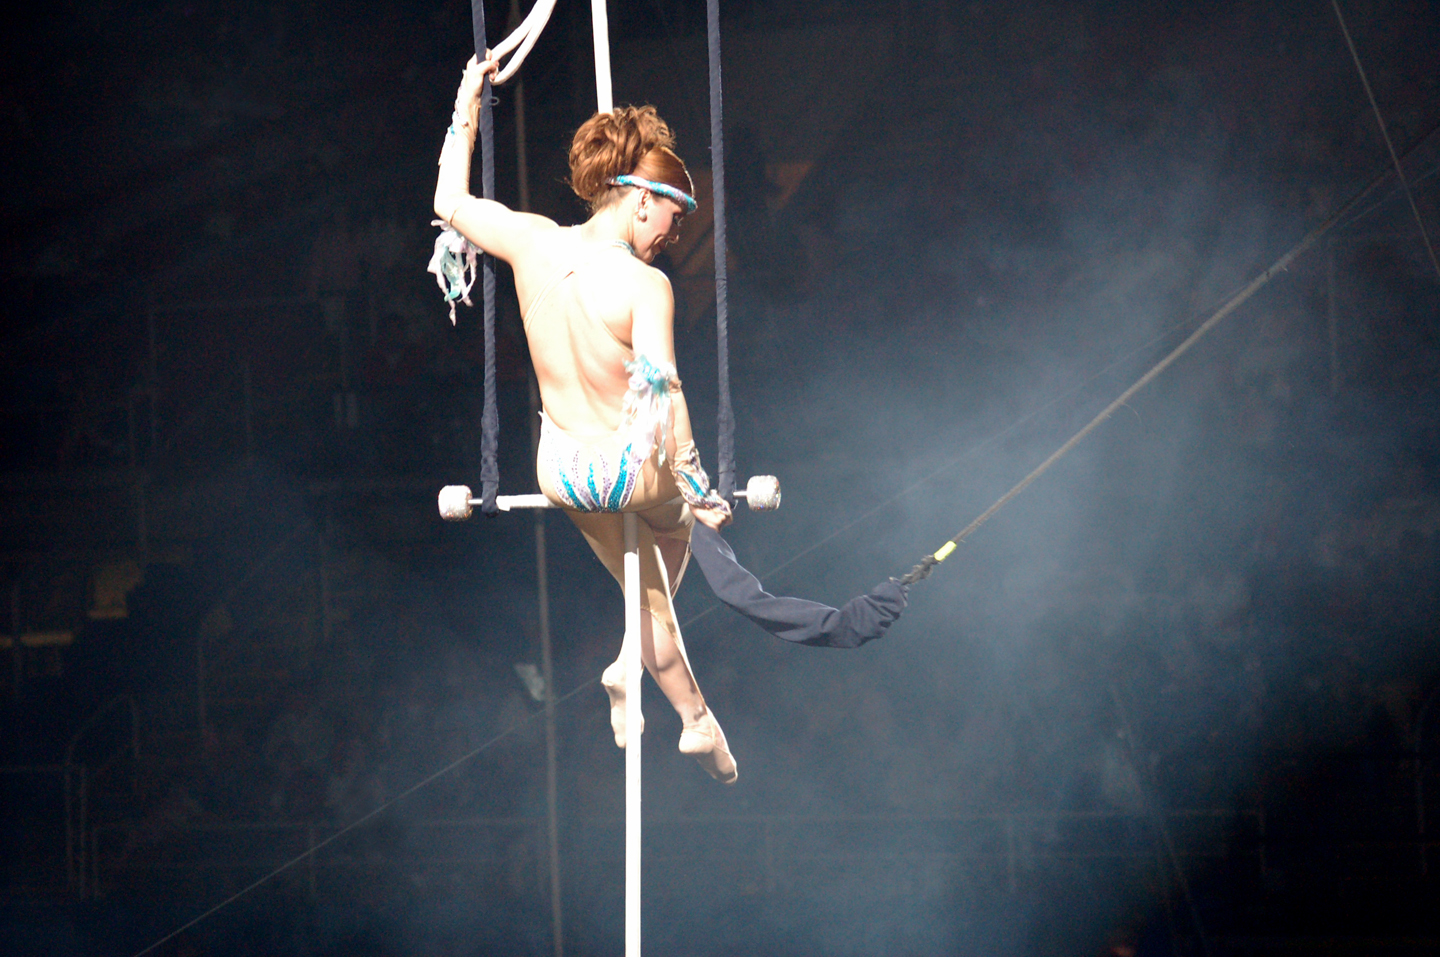 We all worry about the leap from the trapeze.